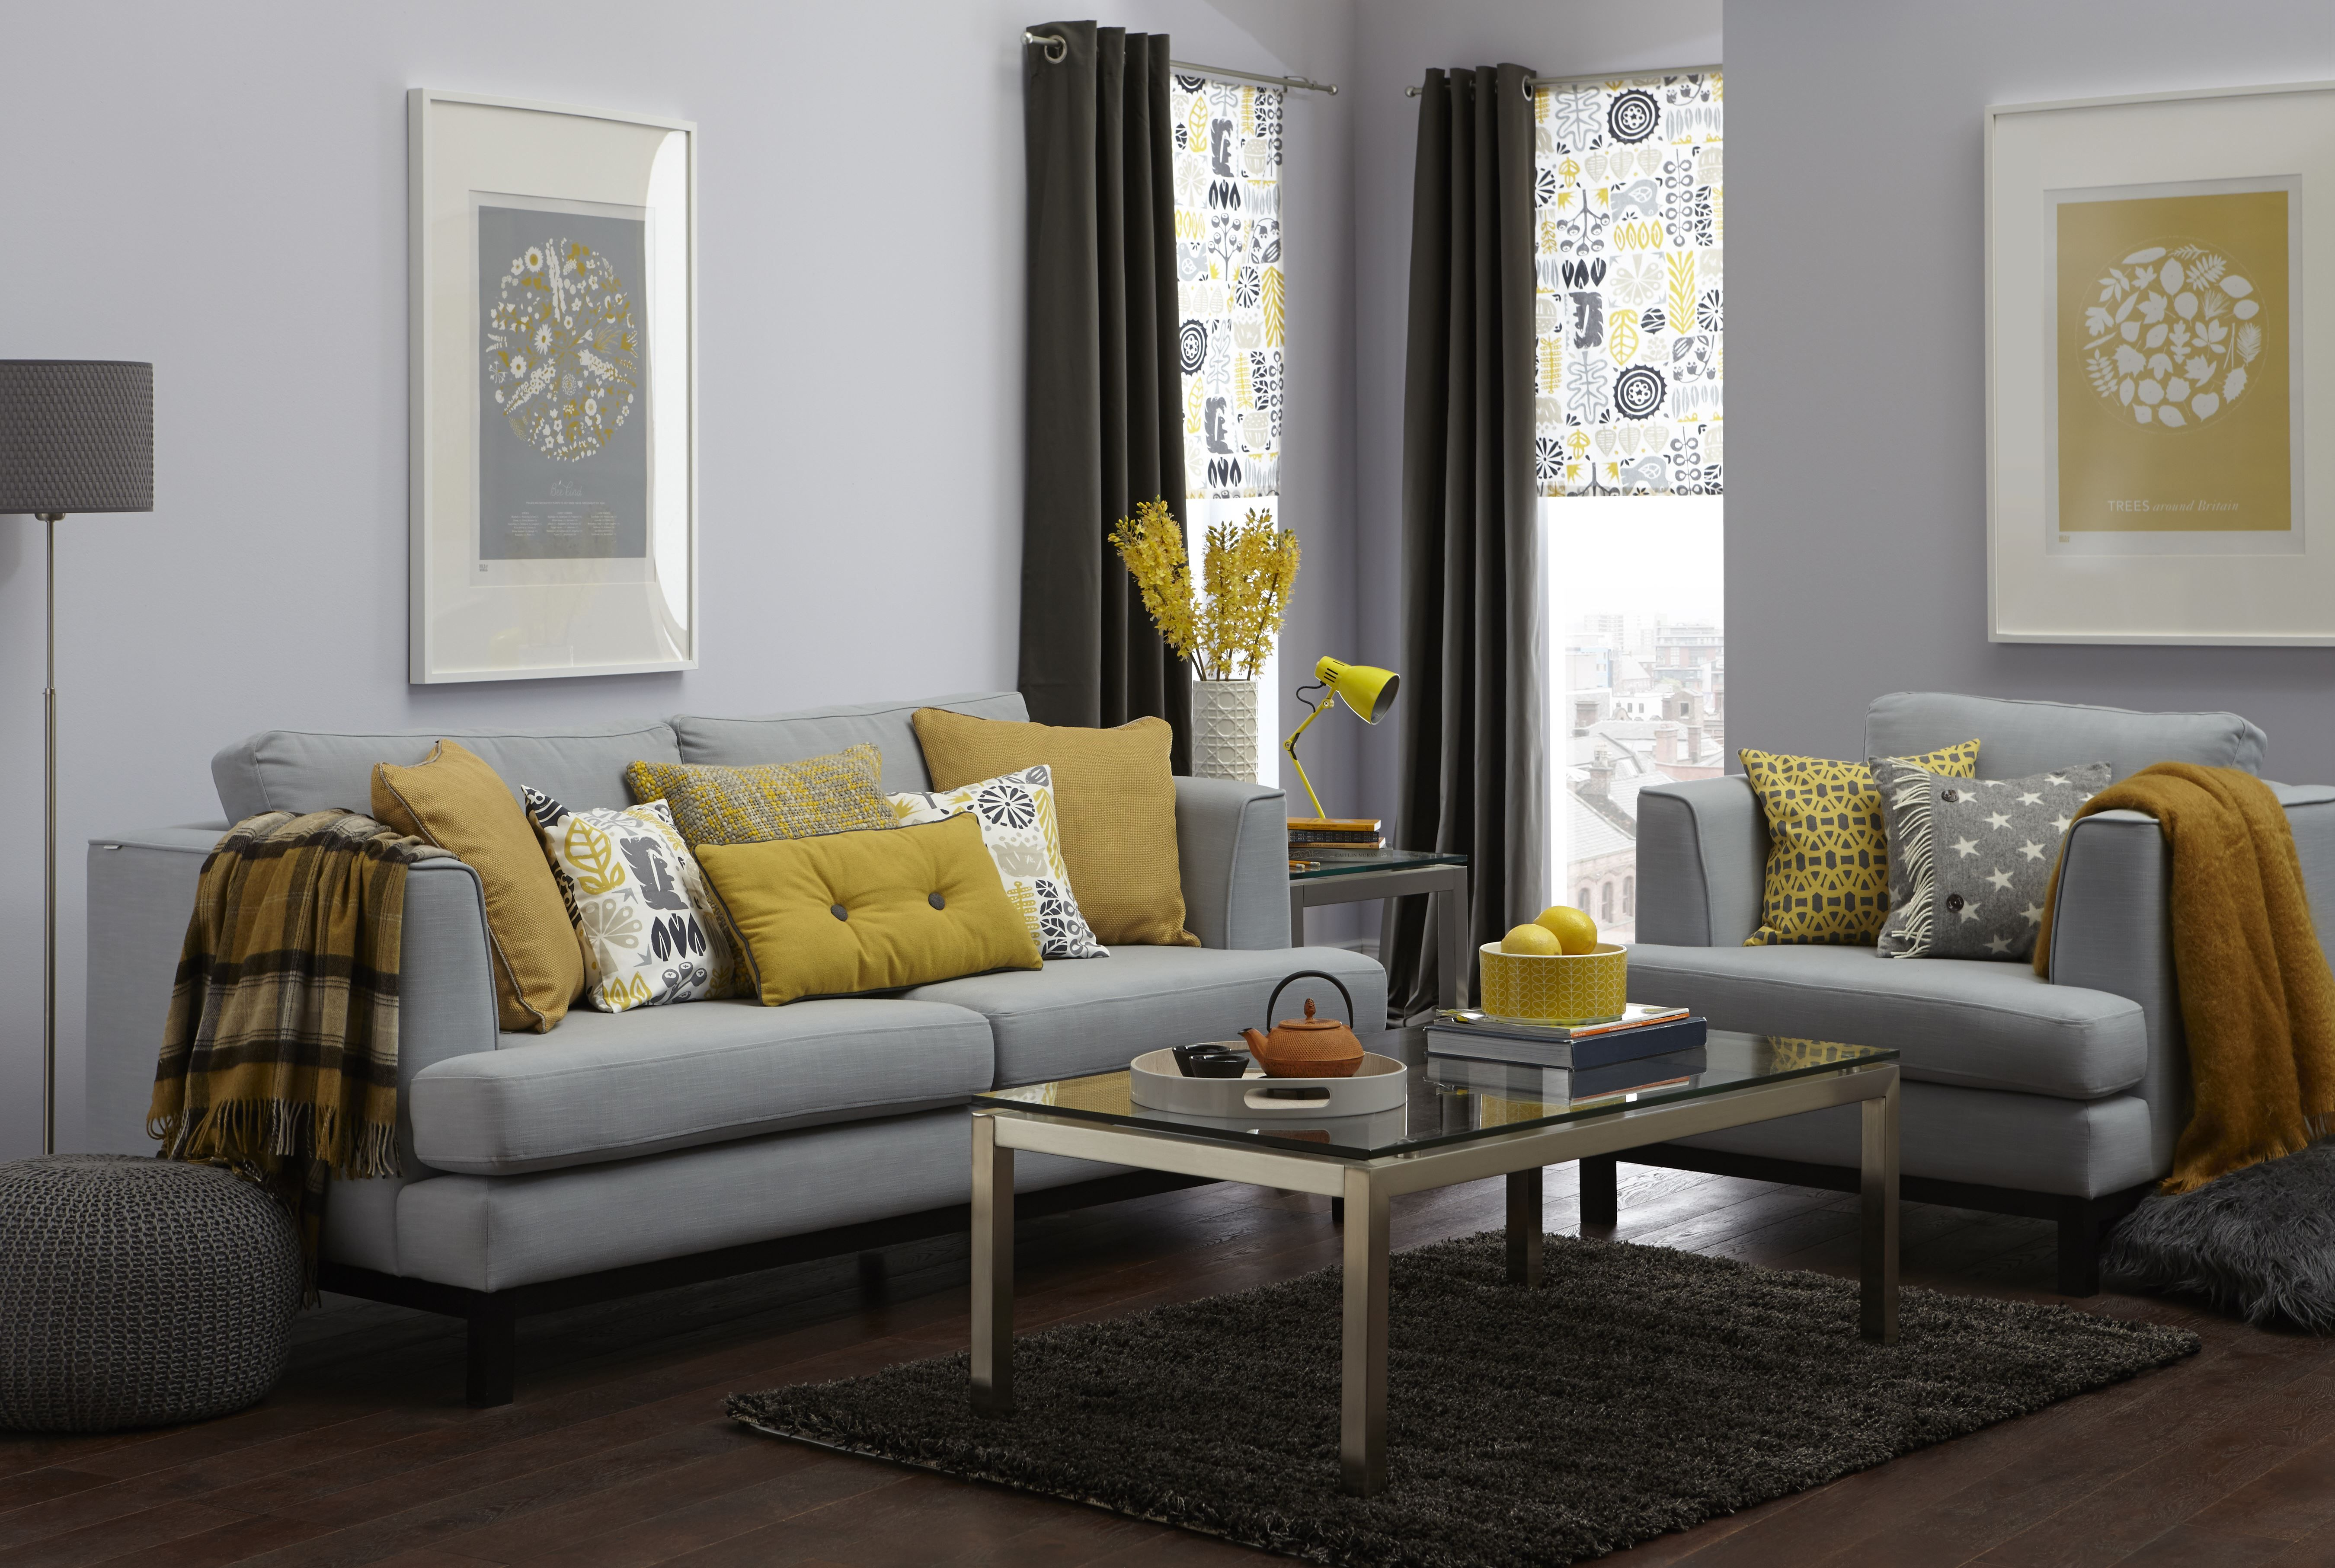 French Connection Ochre Palette Mustard Living Rooms Living Room Grey Yellow Living Room